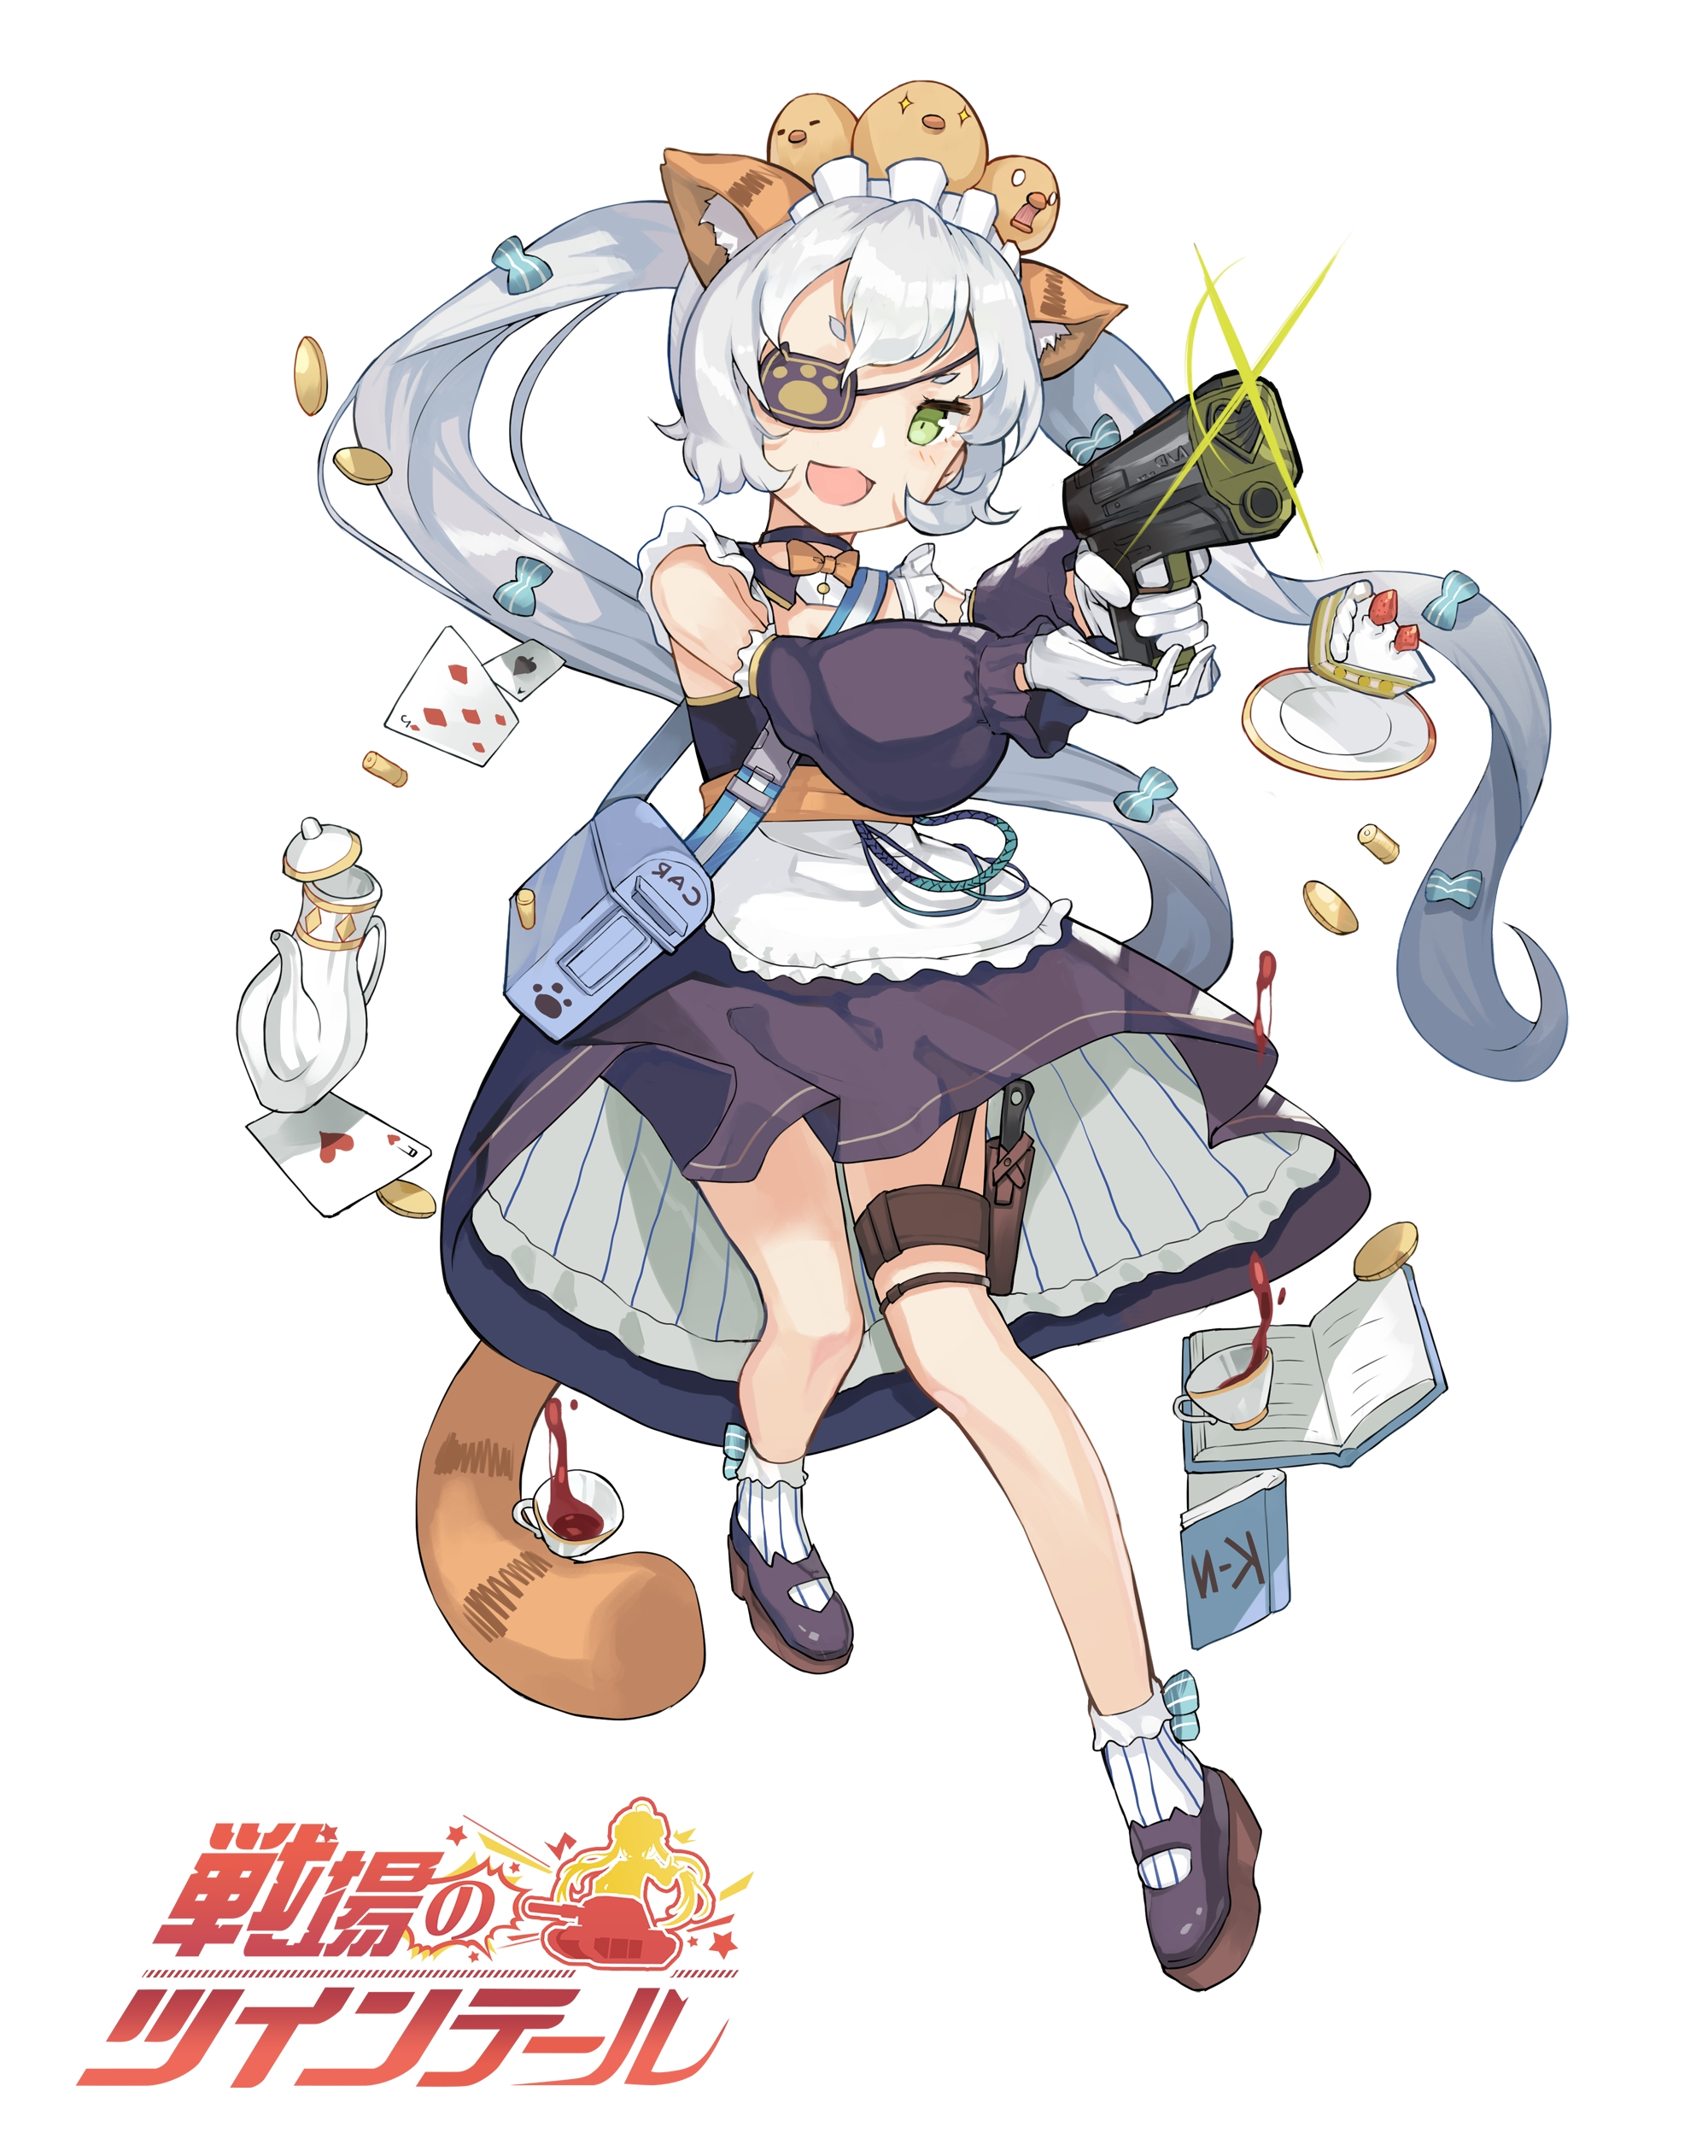 yande.re 412027 animal_ears eyepatch gun maid senjou_no_twintail tail weapon.jpg